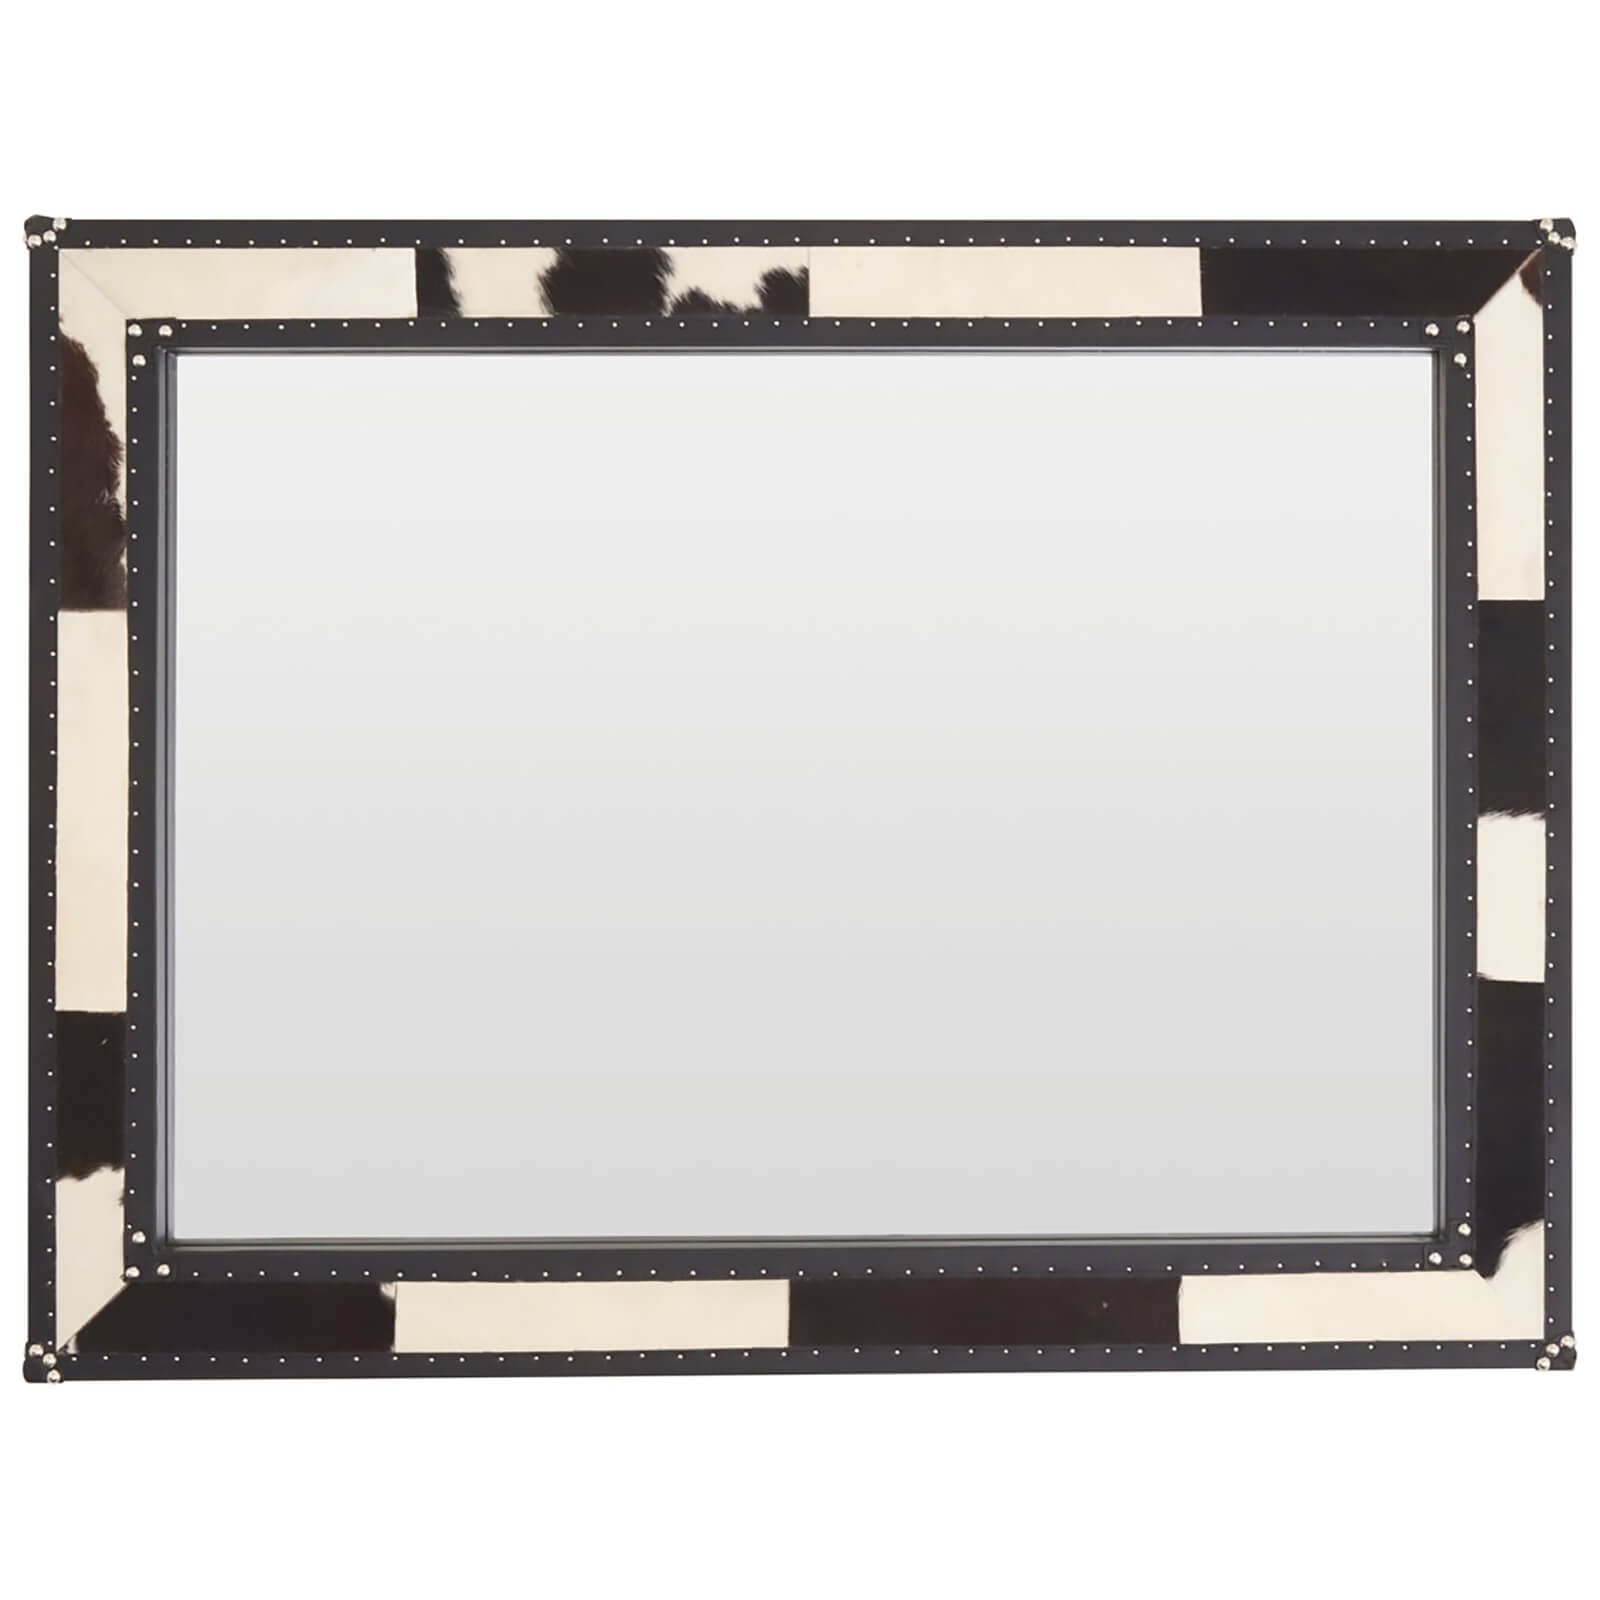 Kensington Townhouse Wall Mirror - Black/White Cowhide